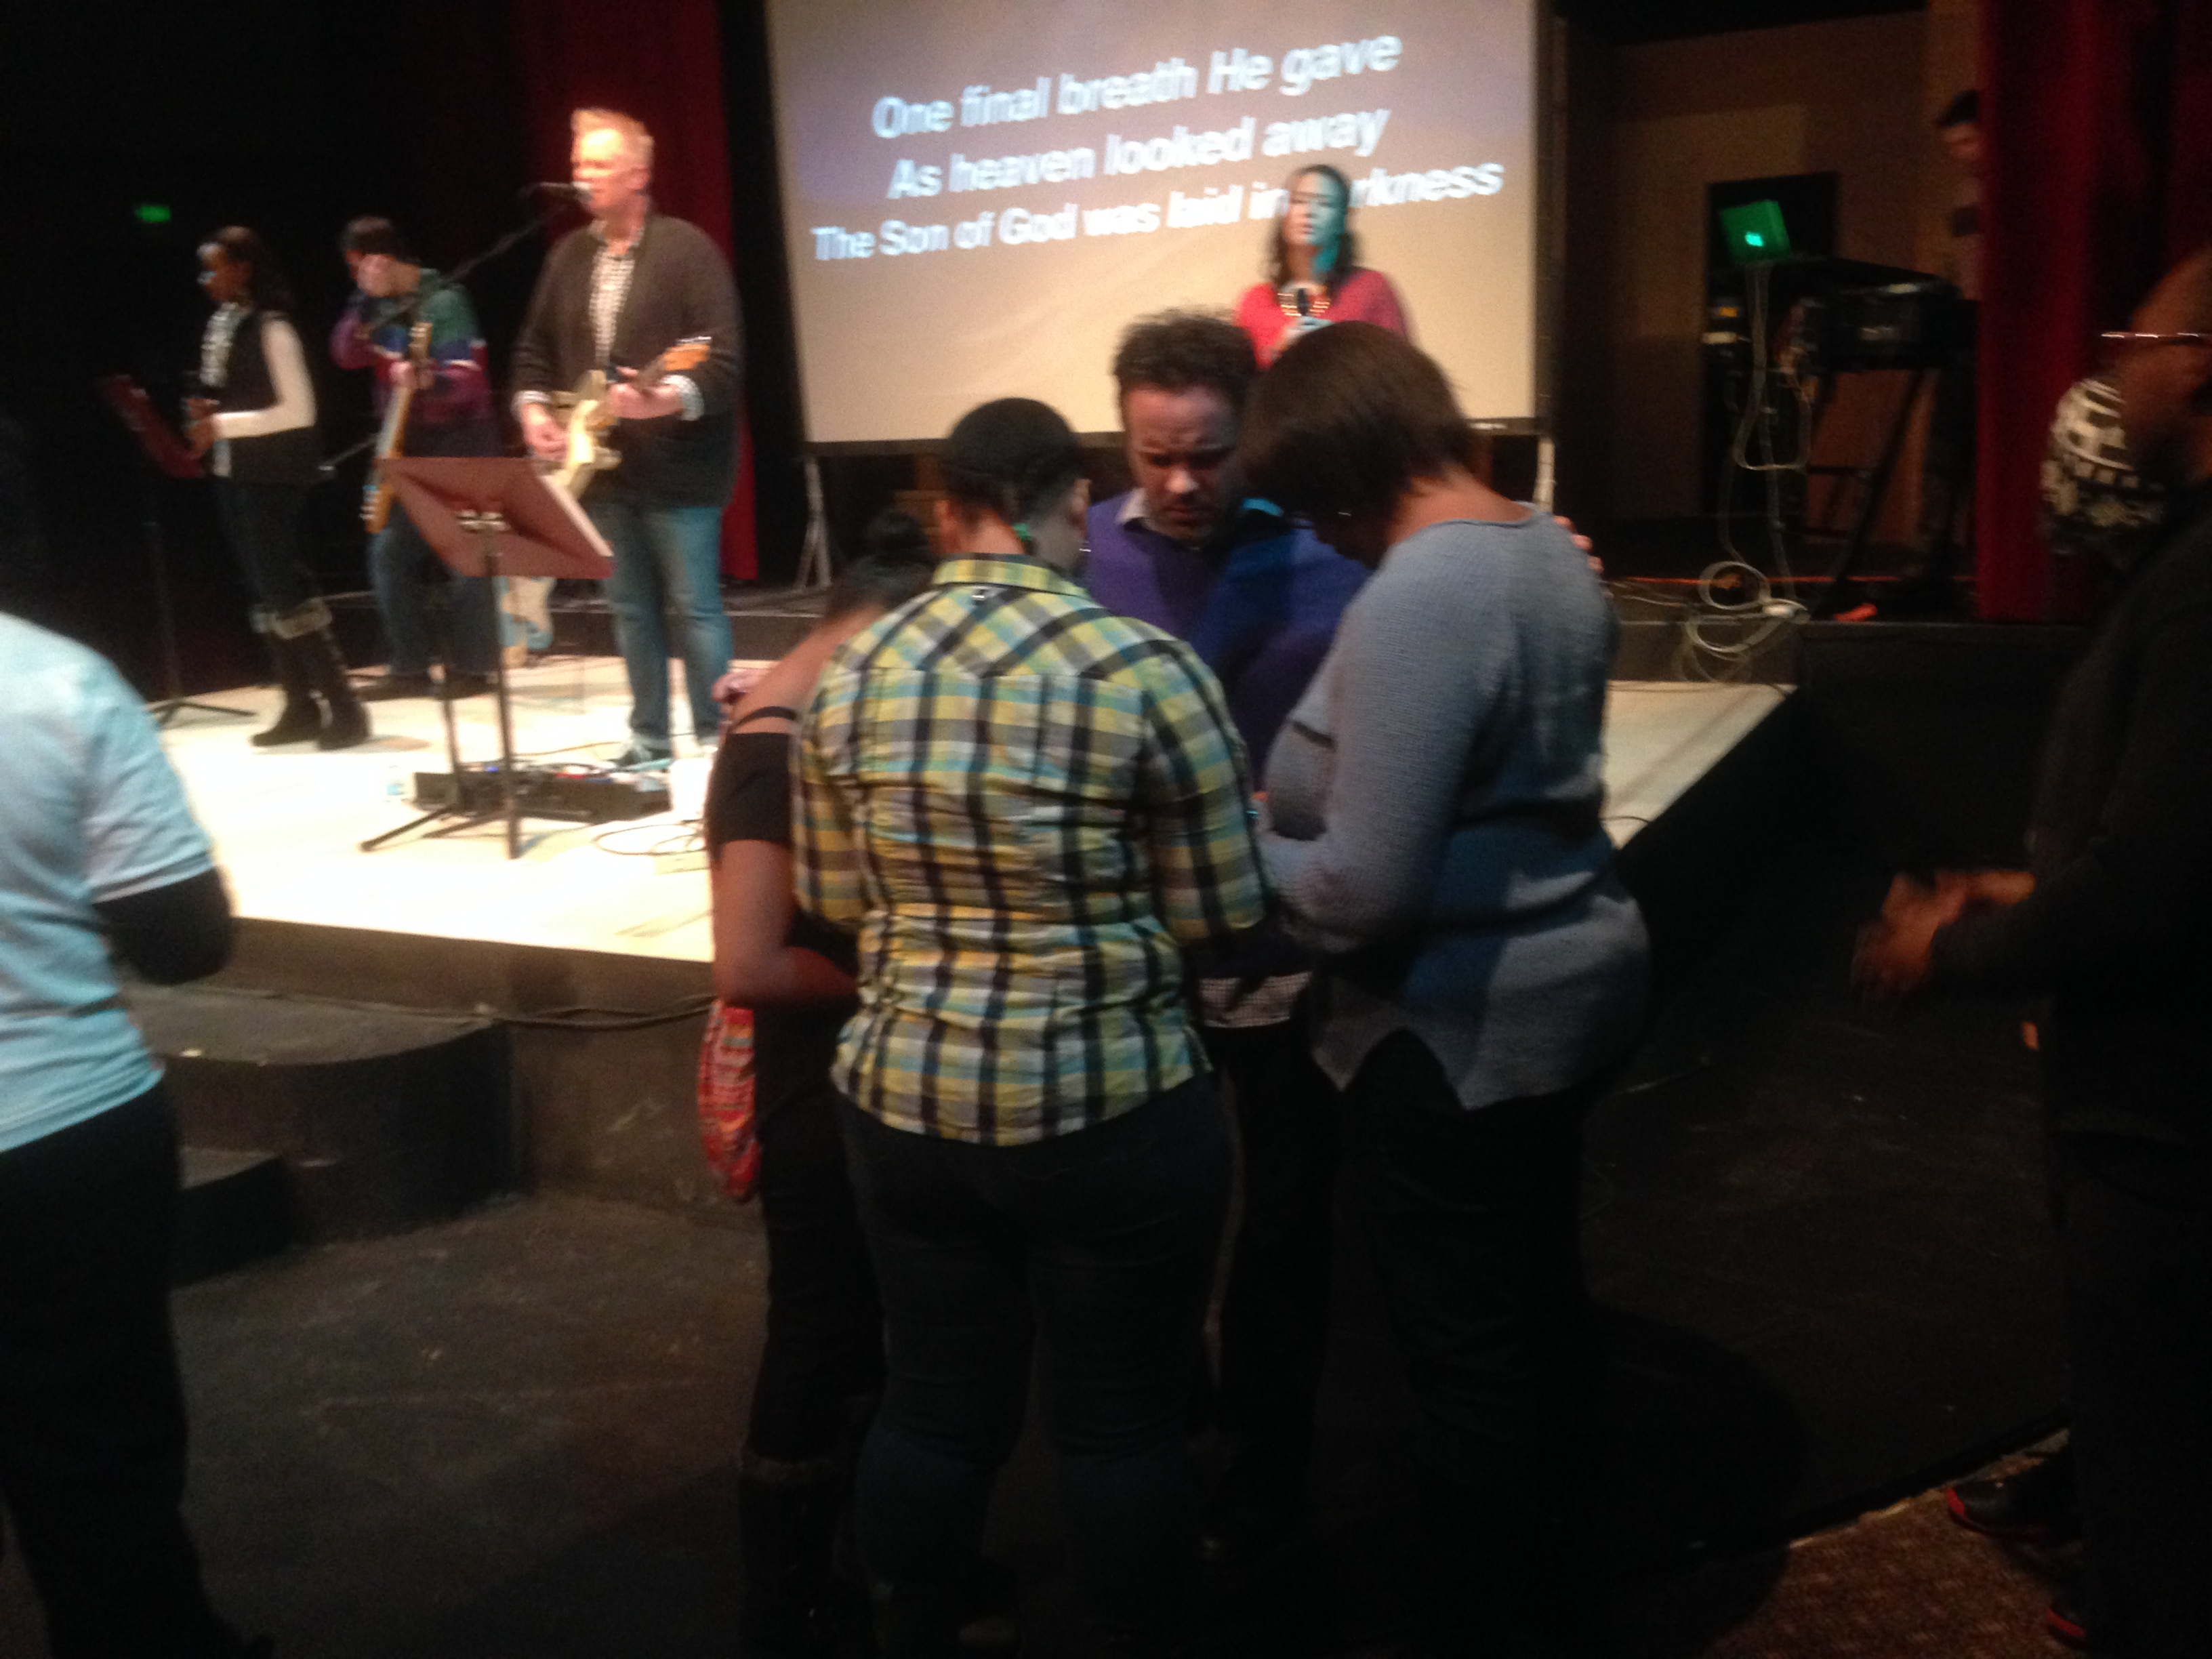 Our NWI Campus enjoyed communion together as families at the altar, and it was powerful!